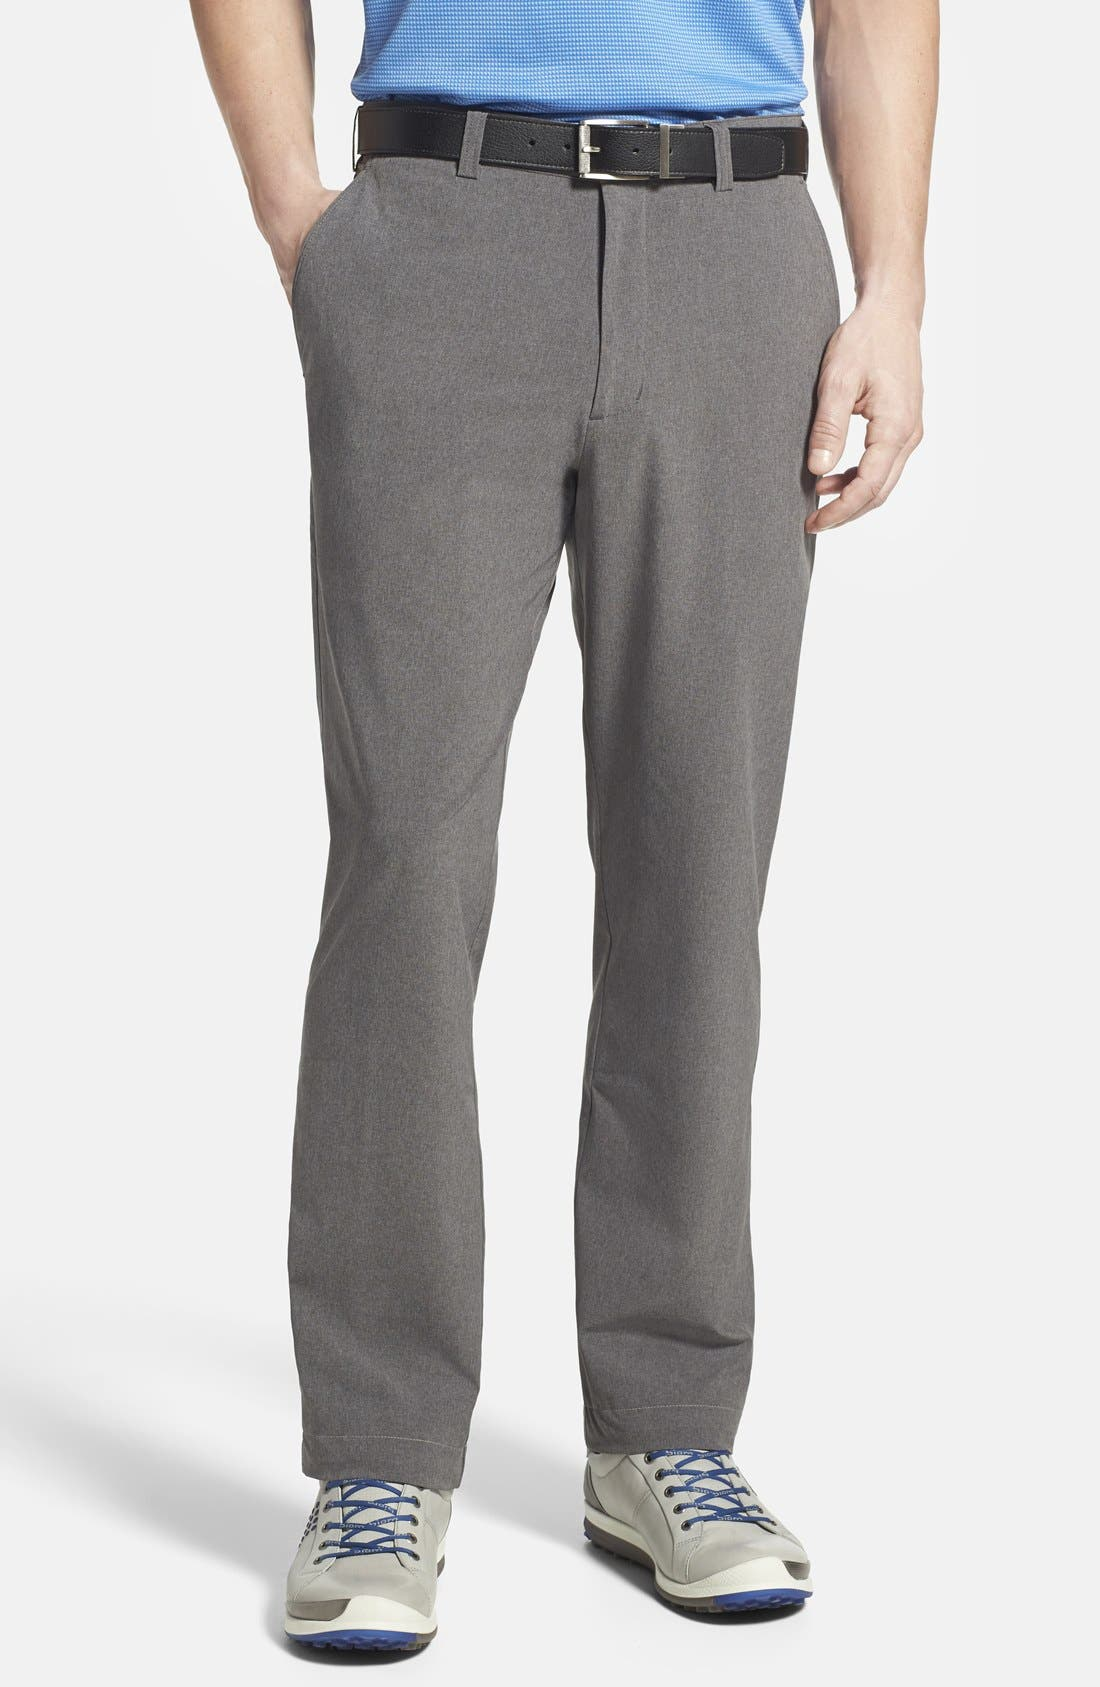 CUTTER & BUCK Bainbridge DryTec Flat Front Pants